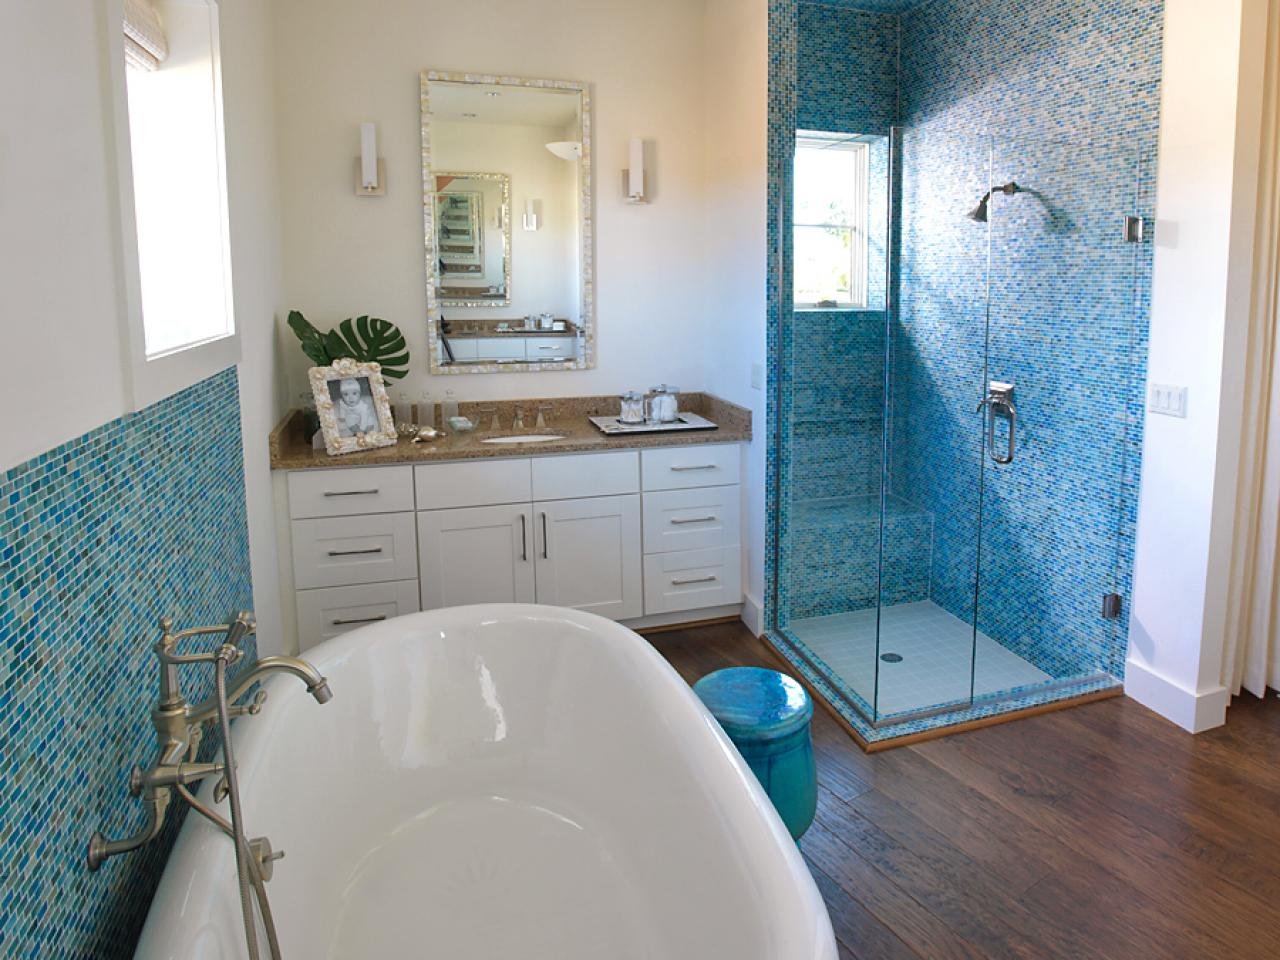 Best of designers 39 portfolio bathrooms bathroom ideas for Bathroom designs hgtv